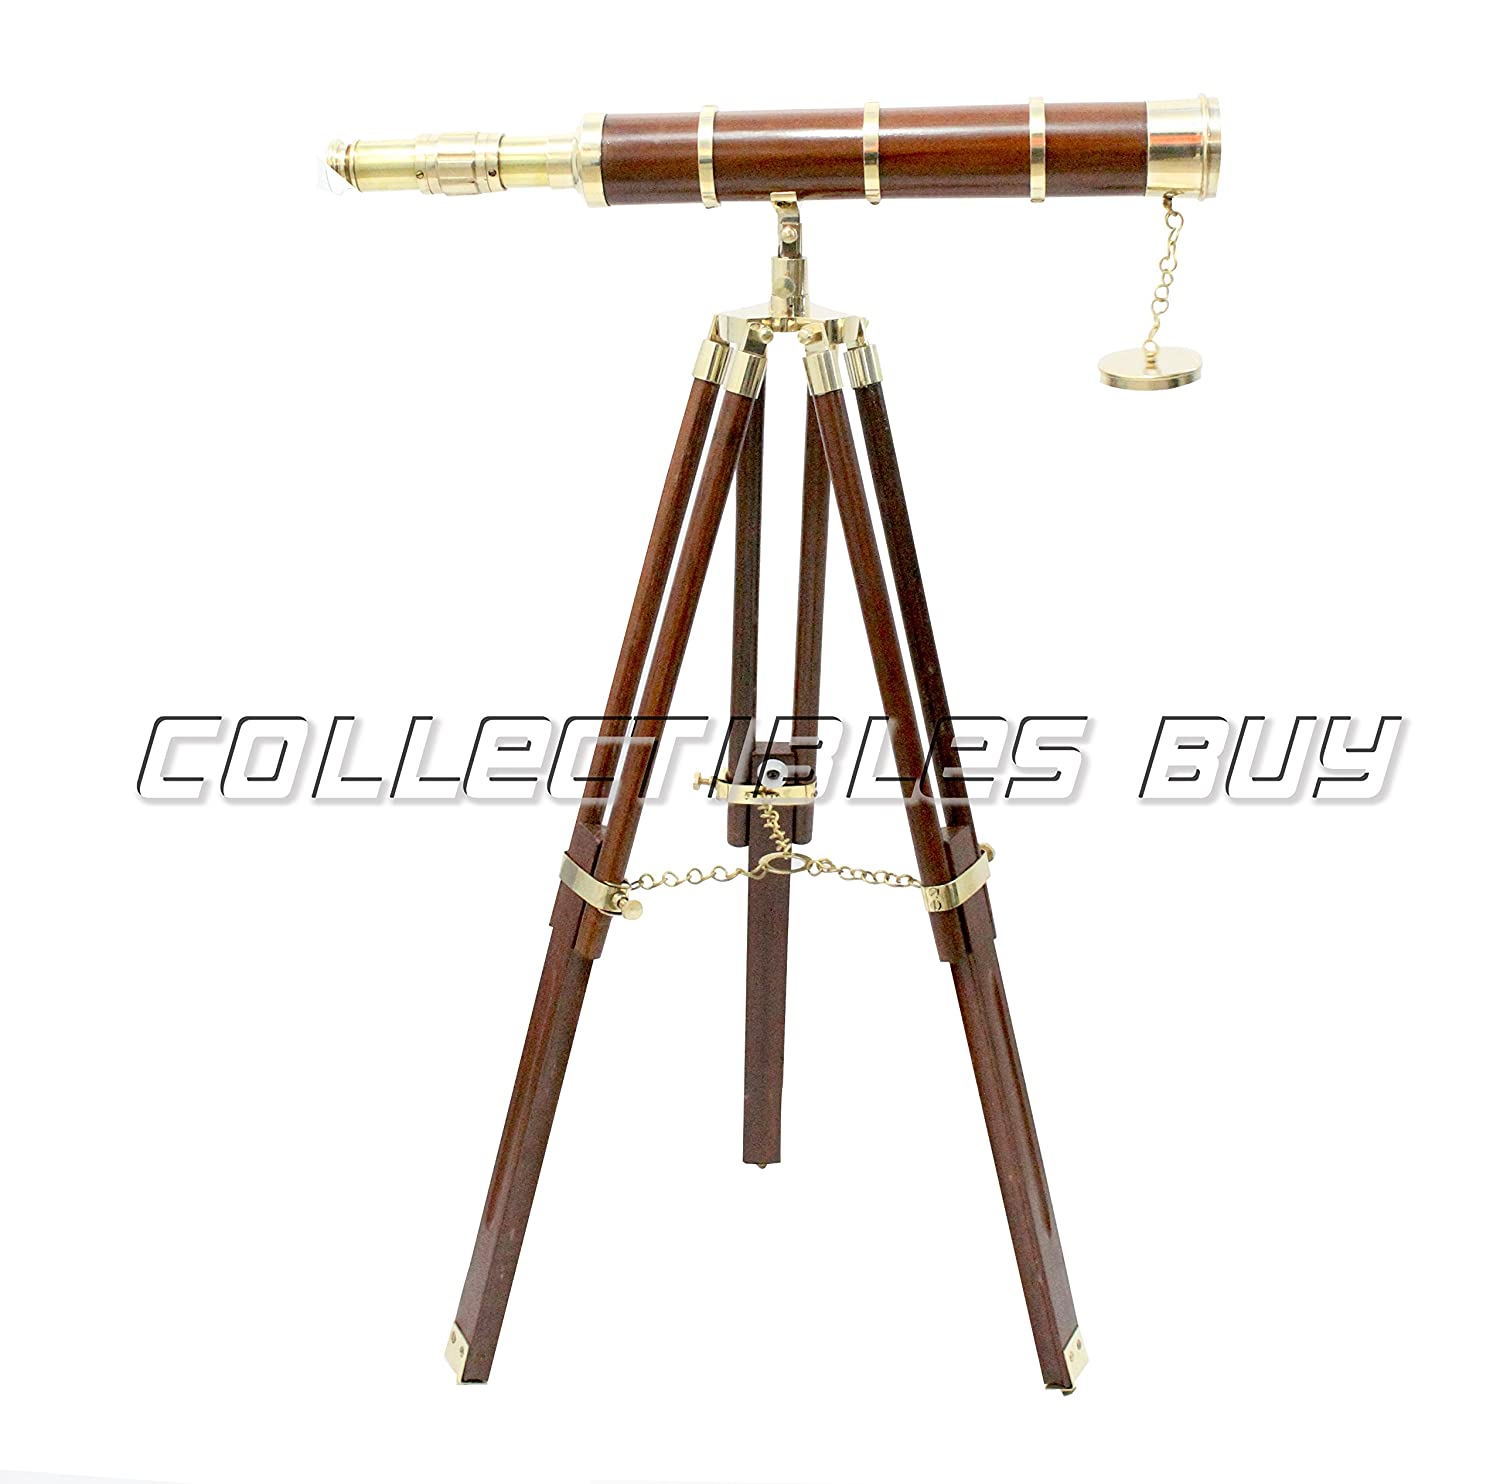 Vintage marine Nautical maritime Navy Brass Telescope Brown Wooden Tripod Collectibles Buy ZTS535